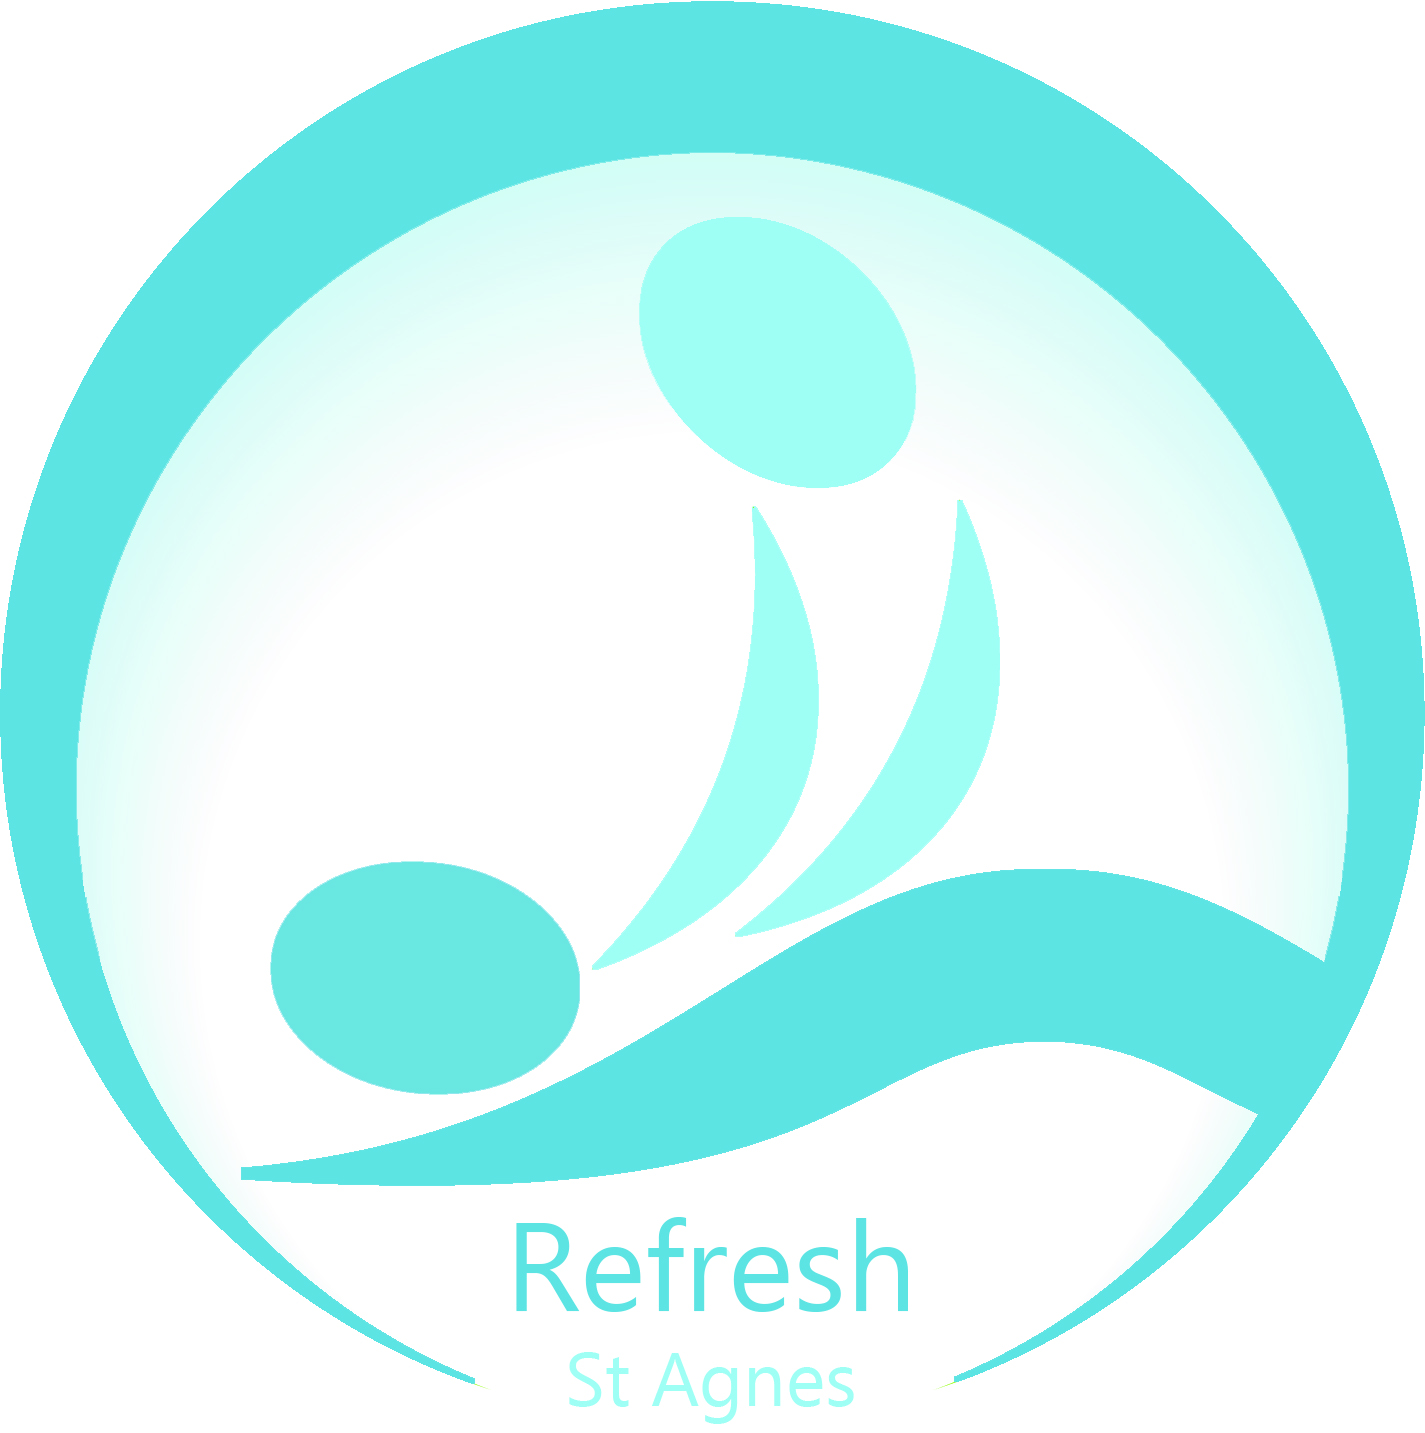 Refresh St Agnes